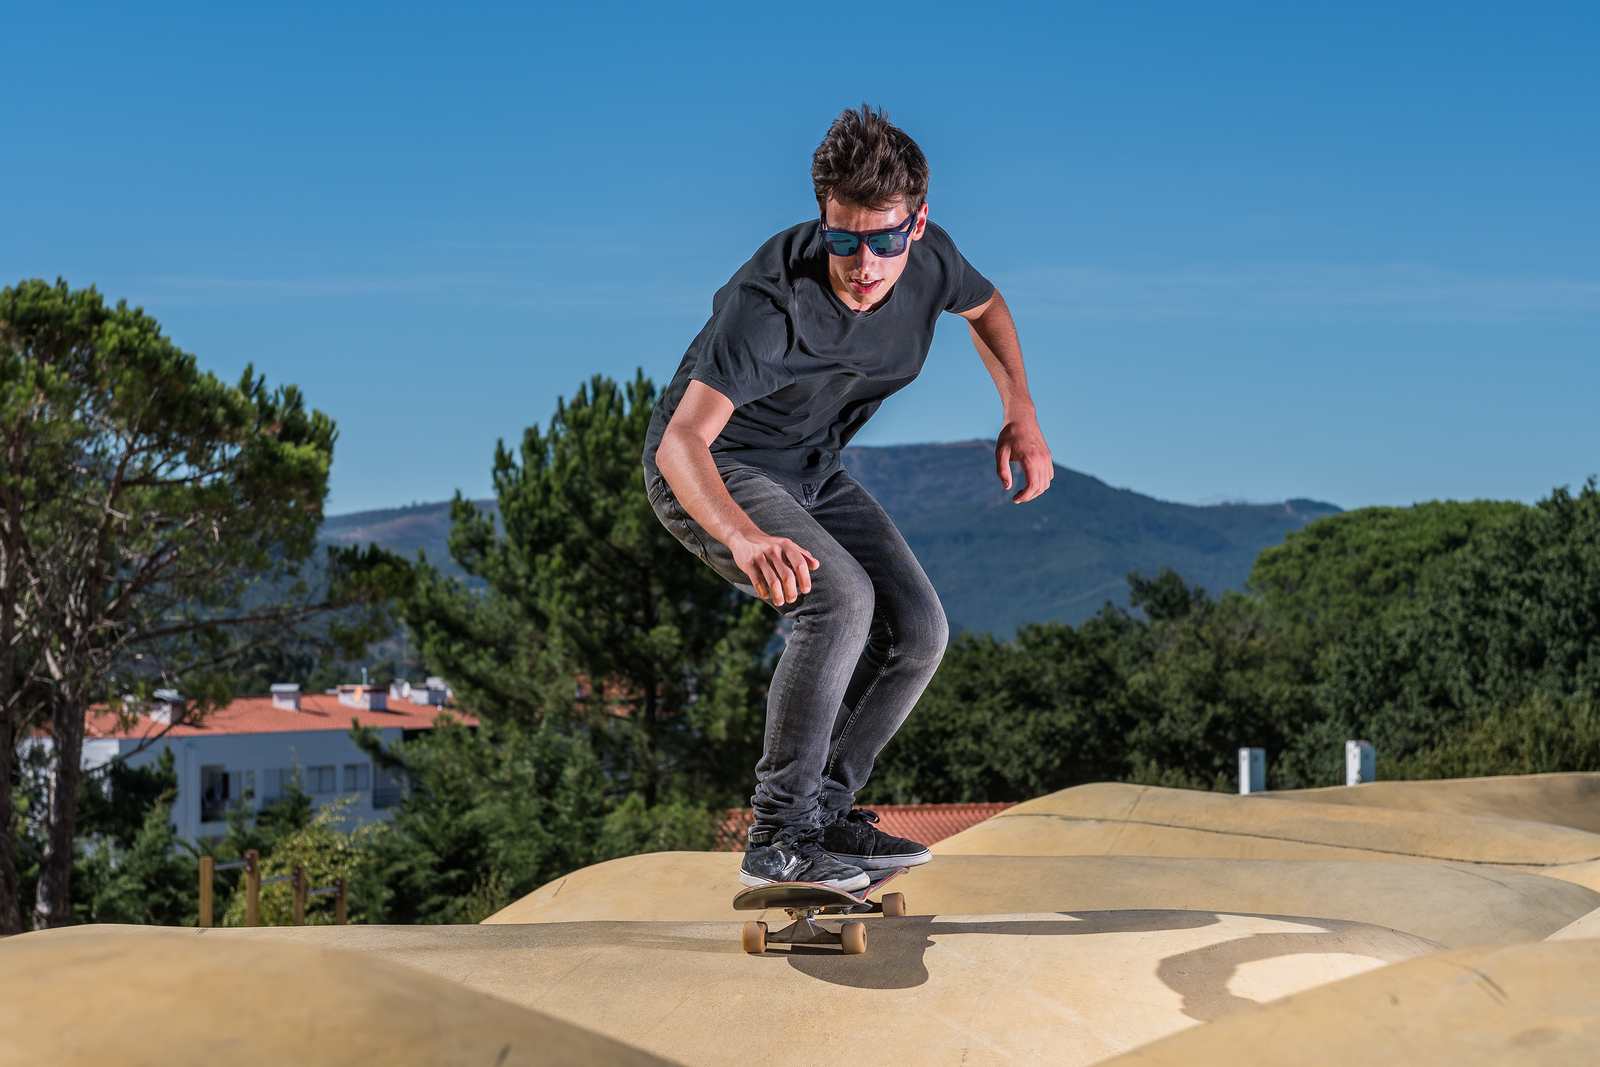 Thumbs up given to pump track and skate feature at Standard Pacific Park